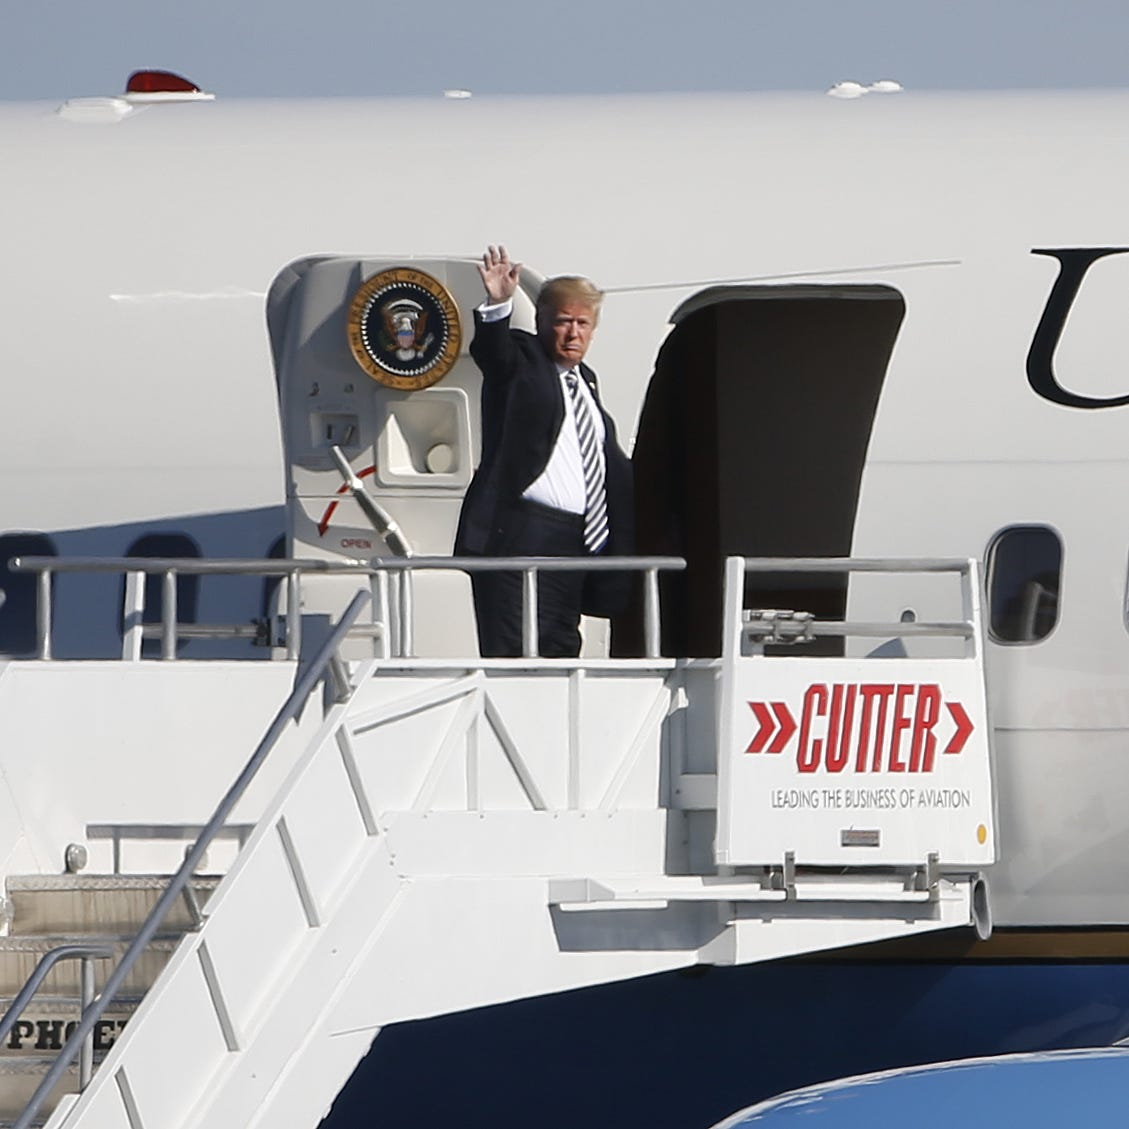 Trump leaves Arizona, heading to MAGA event in Nevada